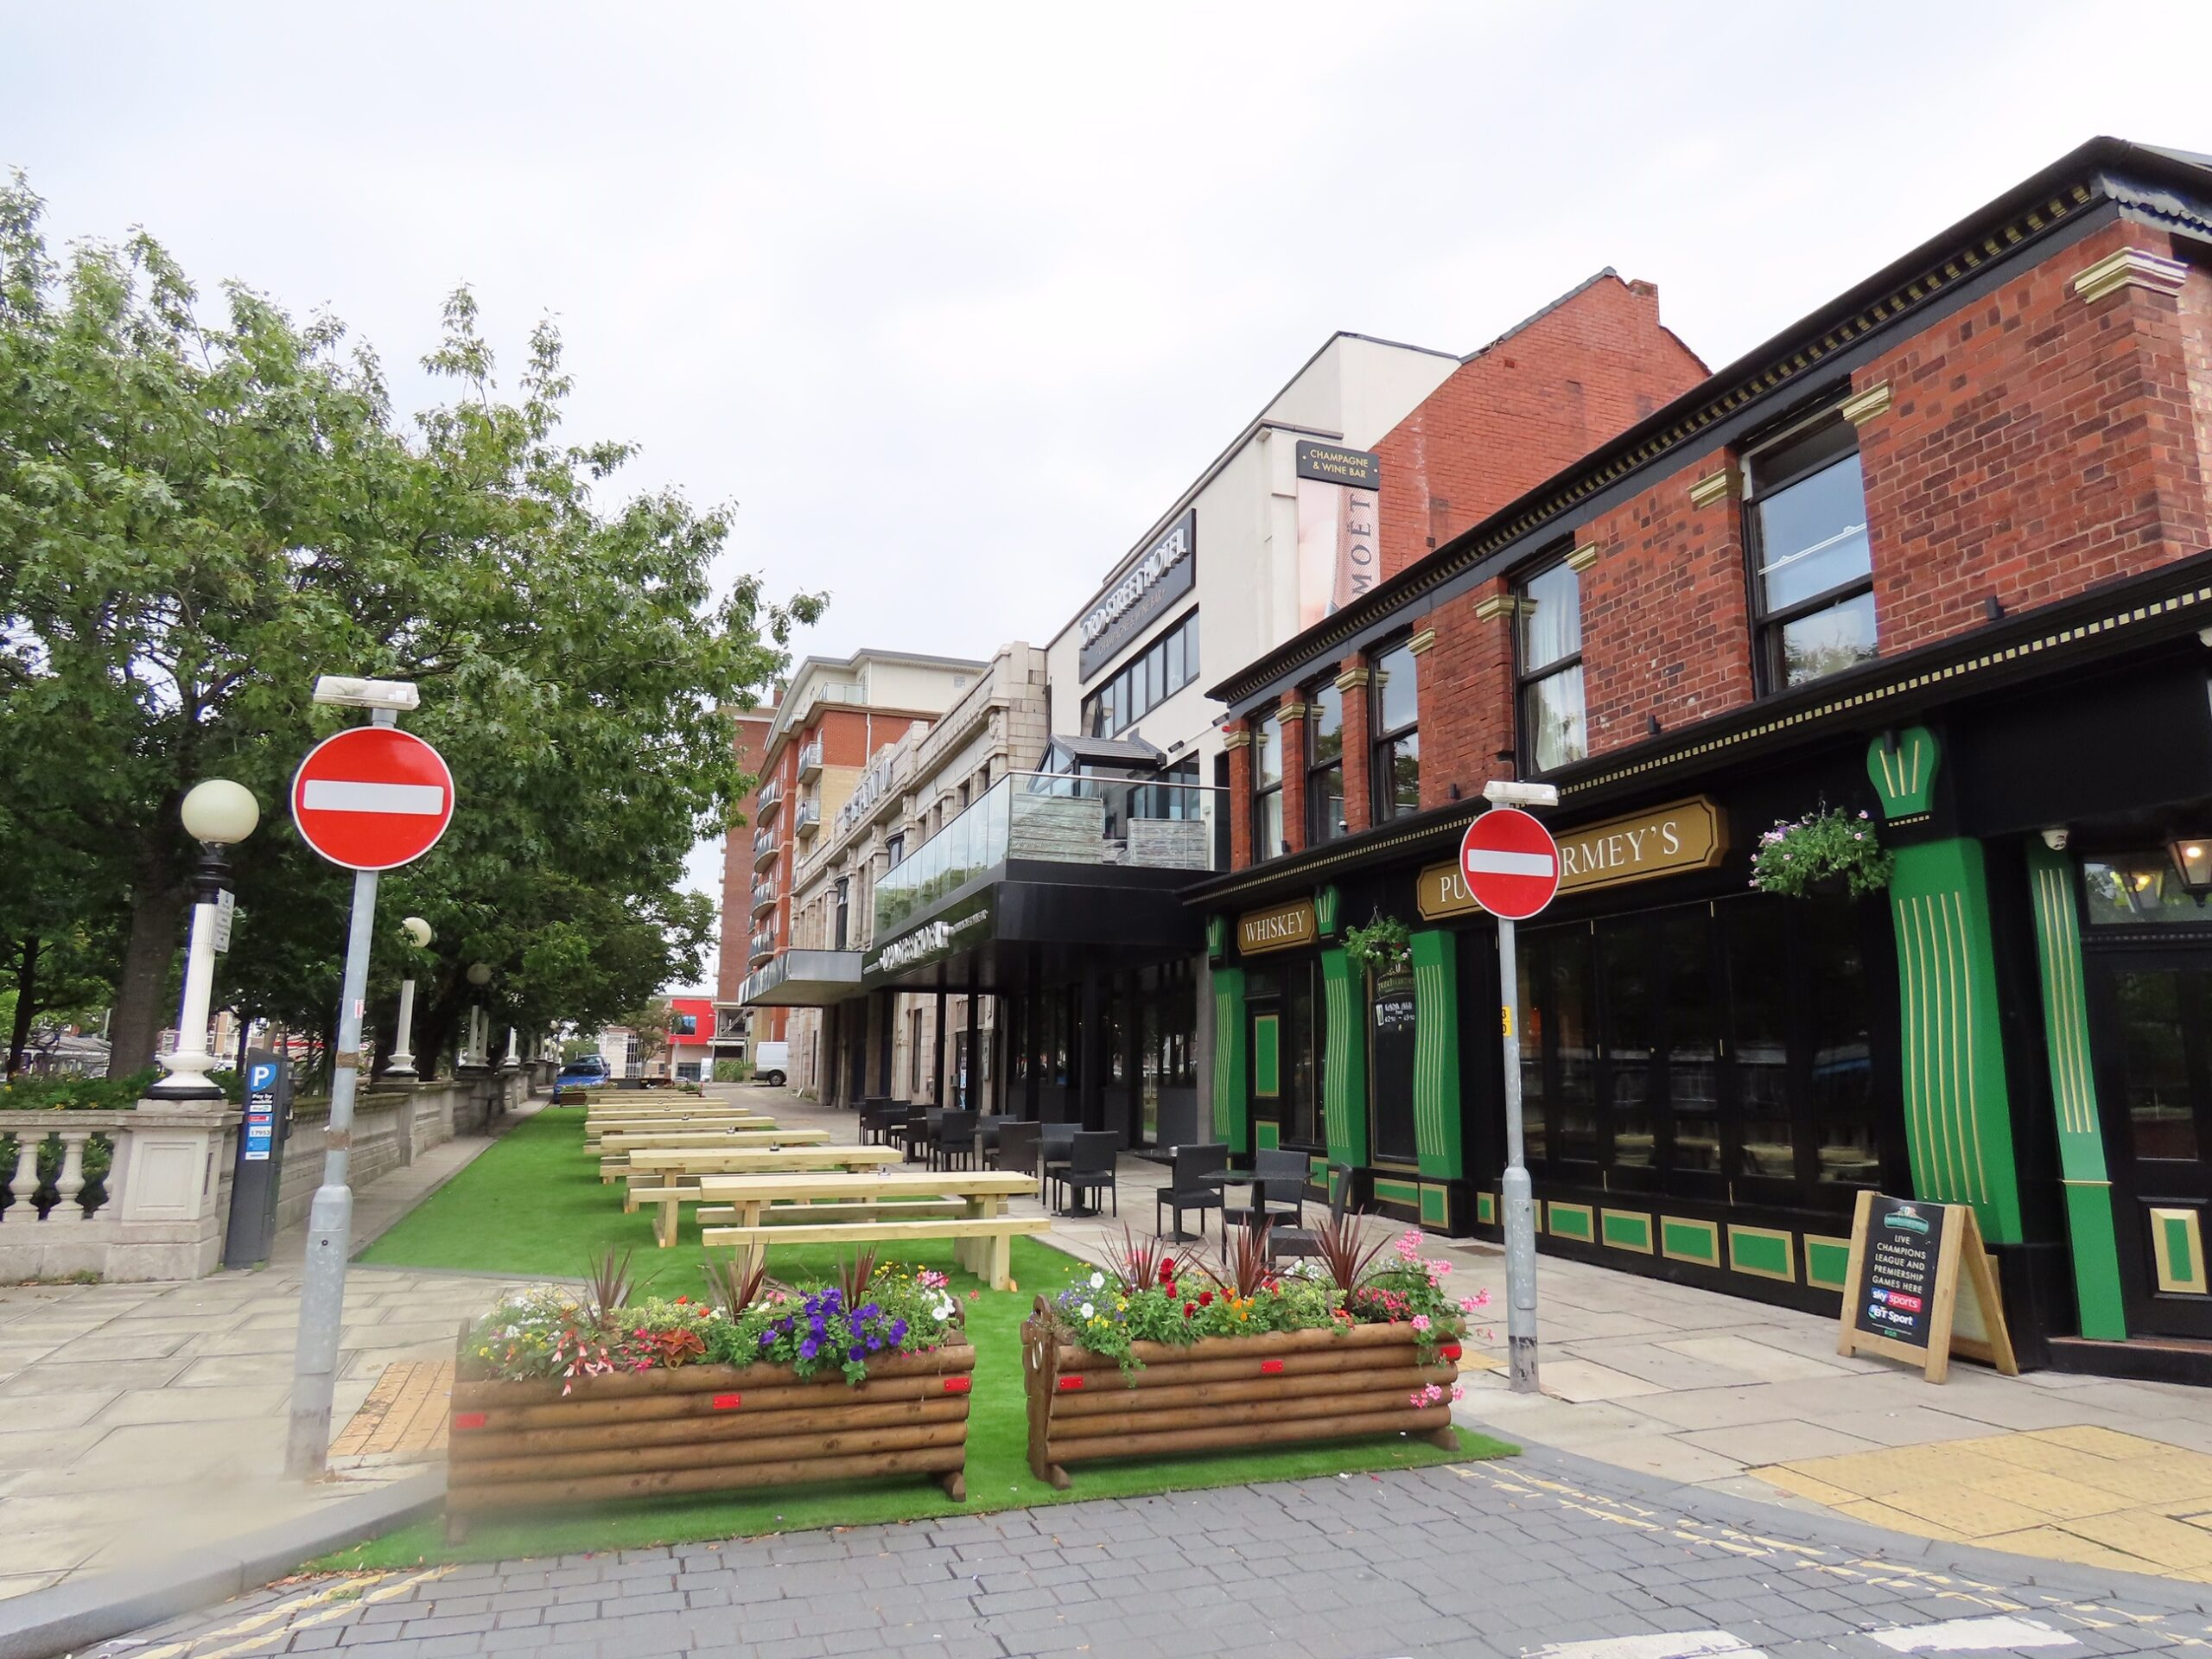 The new Garden Bar outside the Lord Street Hotel and Punch Tarmey's bar on Lord Street in Southport. Photo by Andrew Brown Media